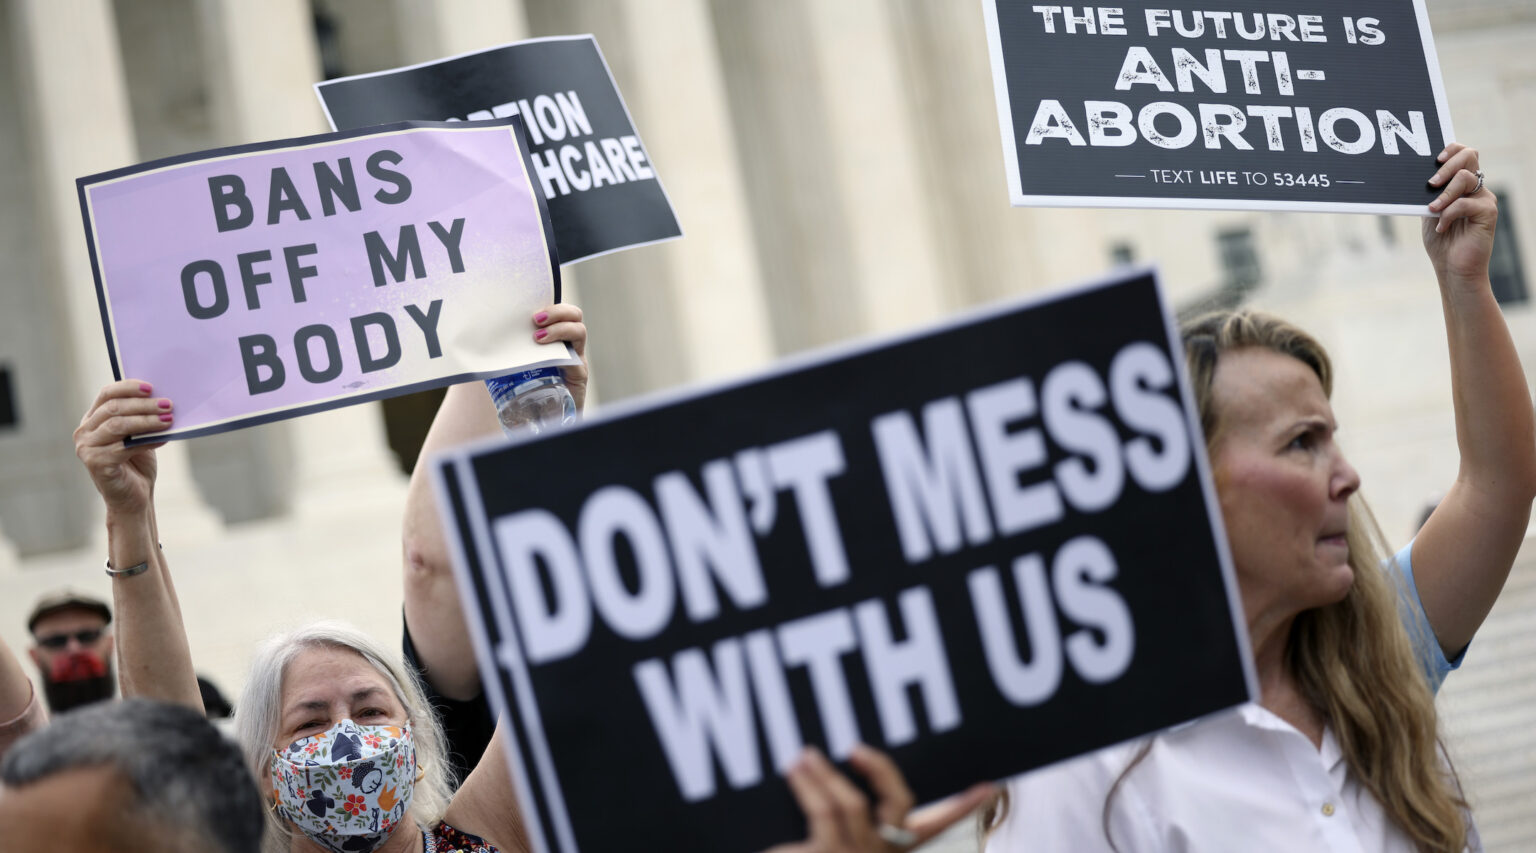 Pro-choice and anti-abortion activists protest alongside each other during a demonstration outside of the Supreme Court in Washington, D.C., Oct. 4, 2021. (Photo/JTA-Kevin Dietsch-Getty Images)